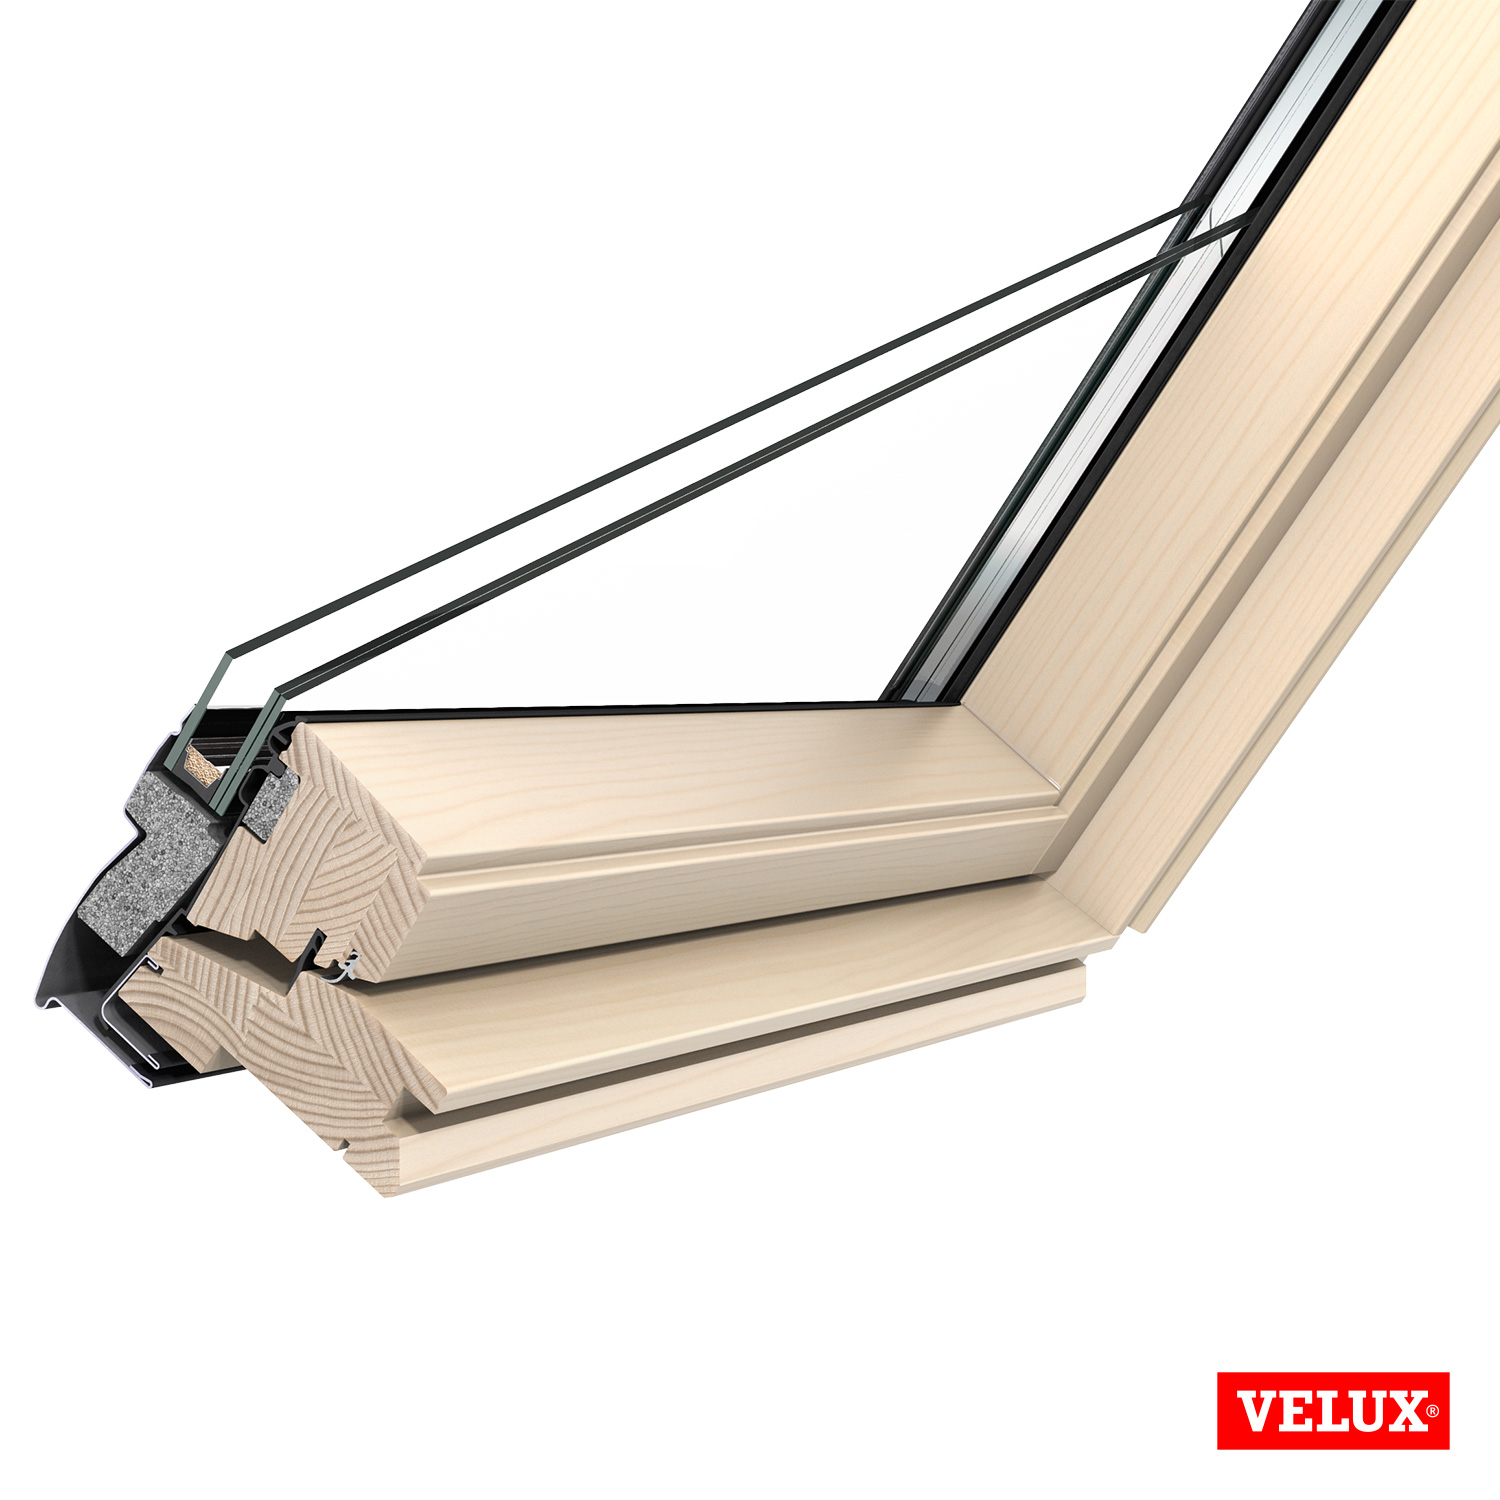 Details About Velux Ggl 3070 Centre Pivot Pine Roof Window With Flashing Kit